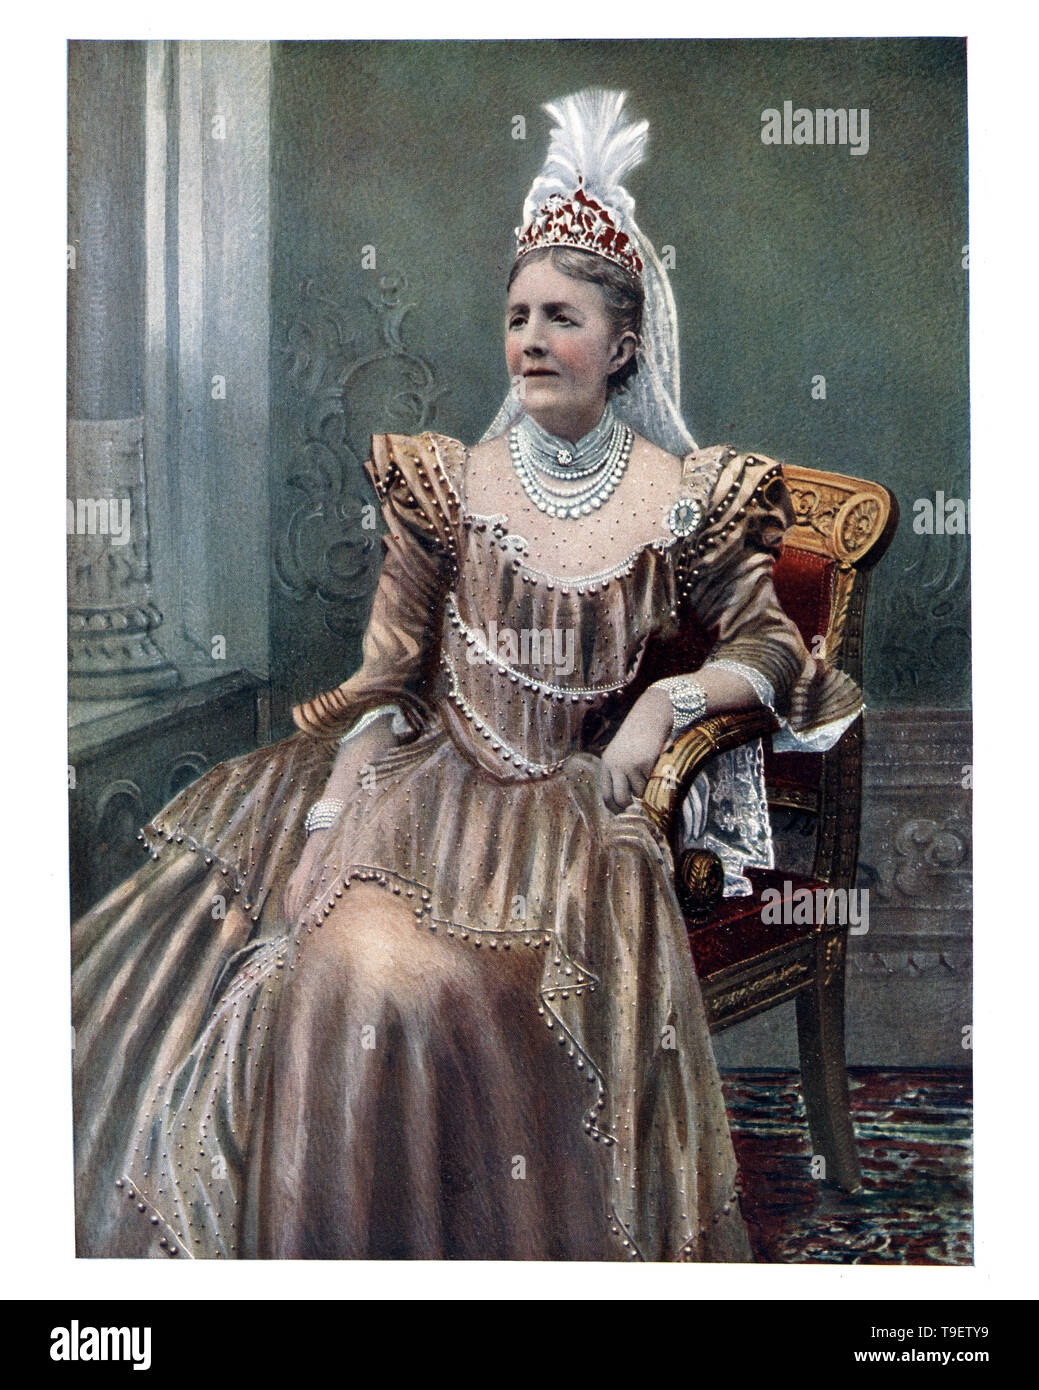 Sophia of Nassau Queen consort of Sweden and Norway, Sophia was Queen of Sweden for 35 years, longer than anyone before her. - Stock Image